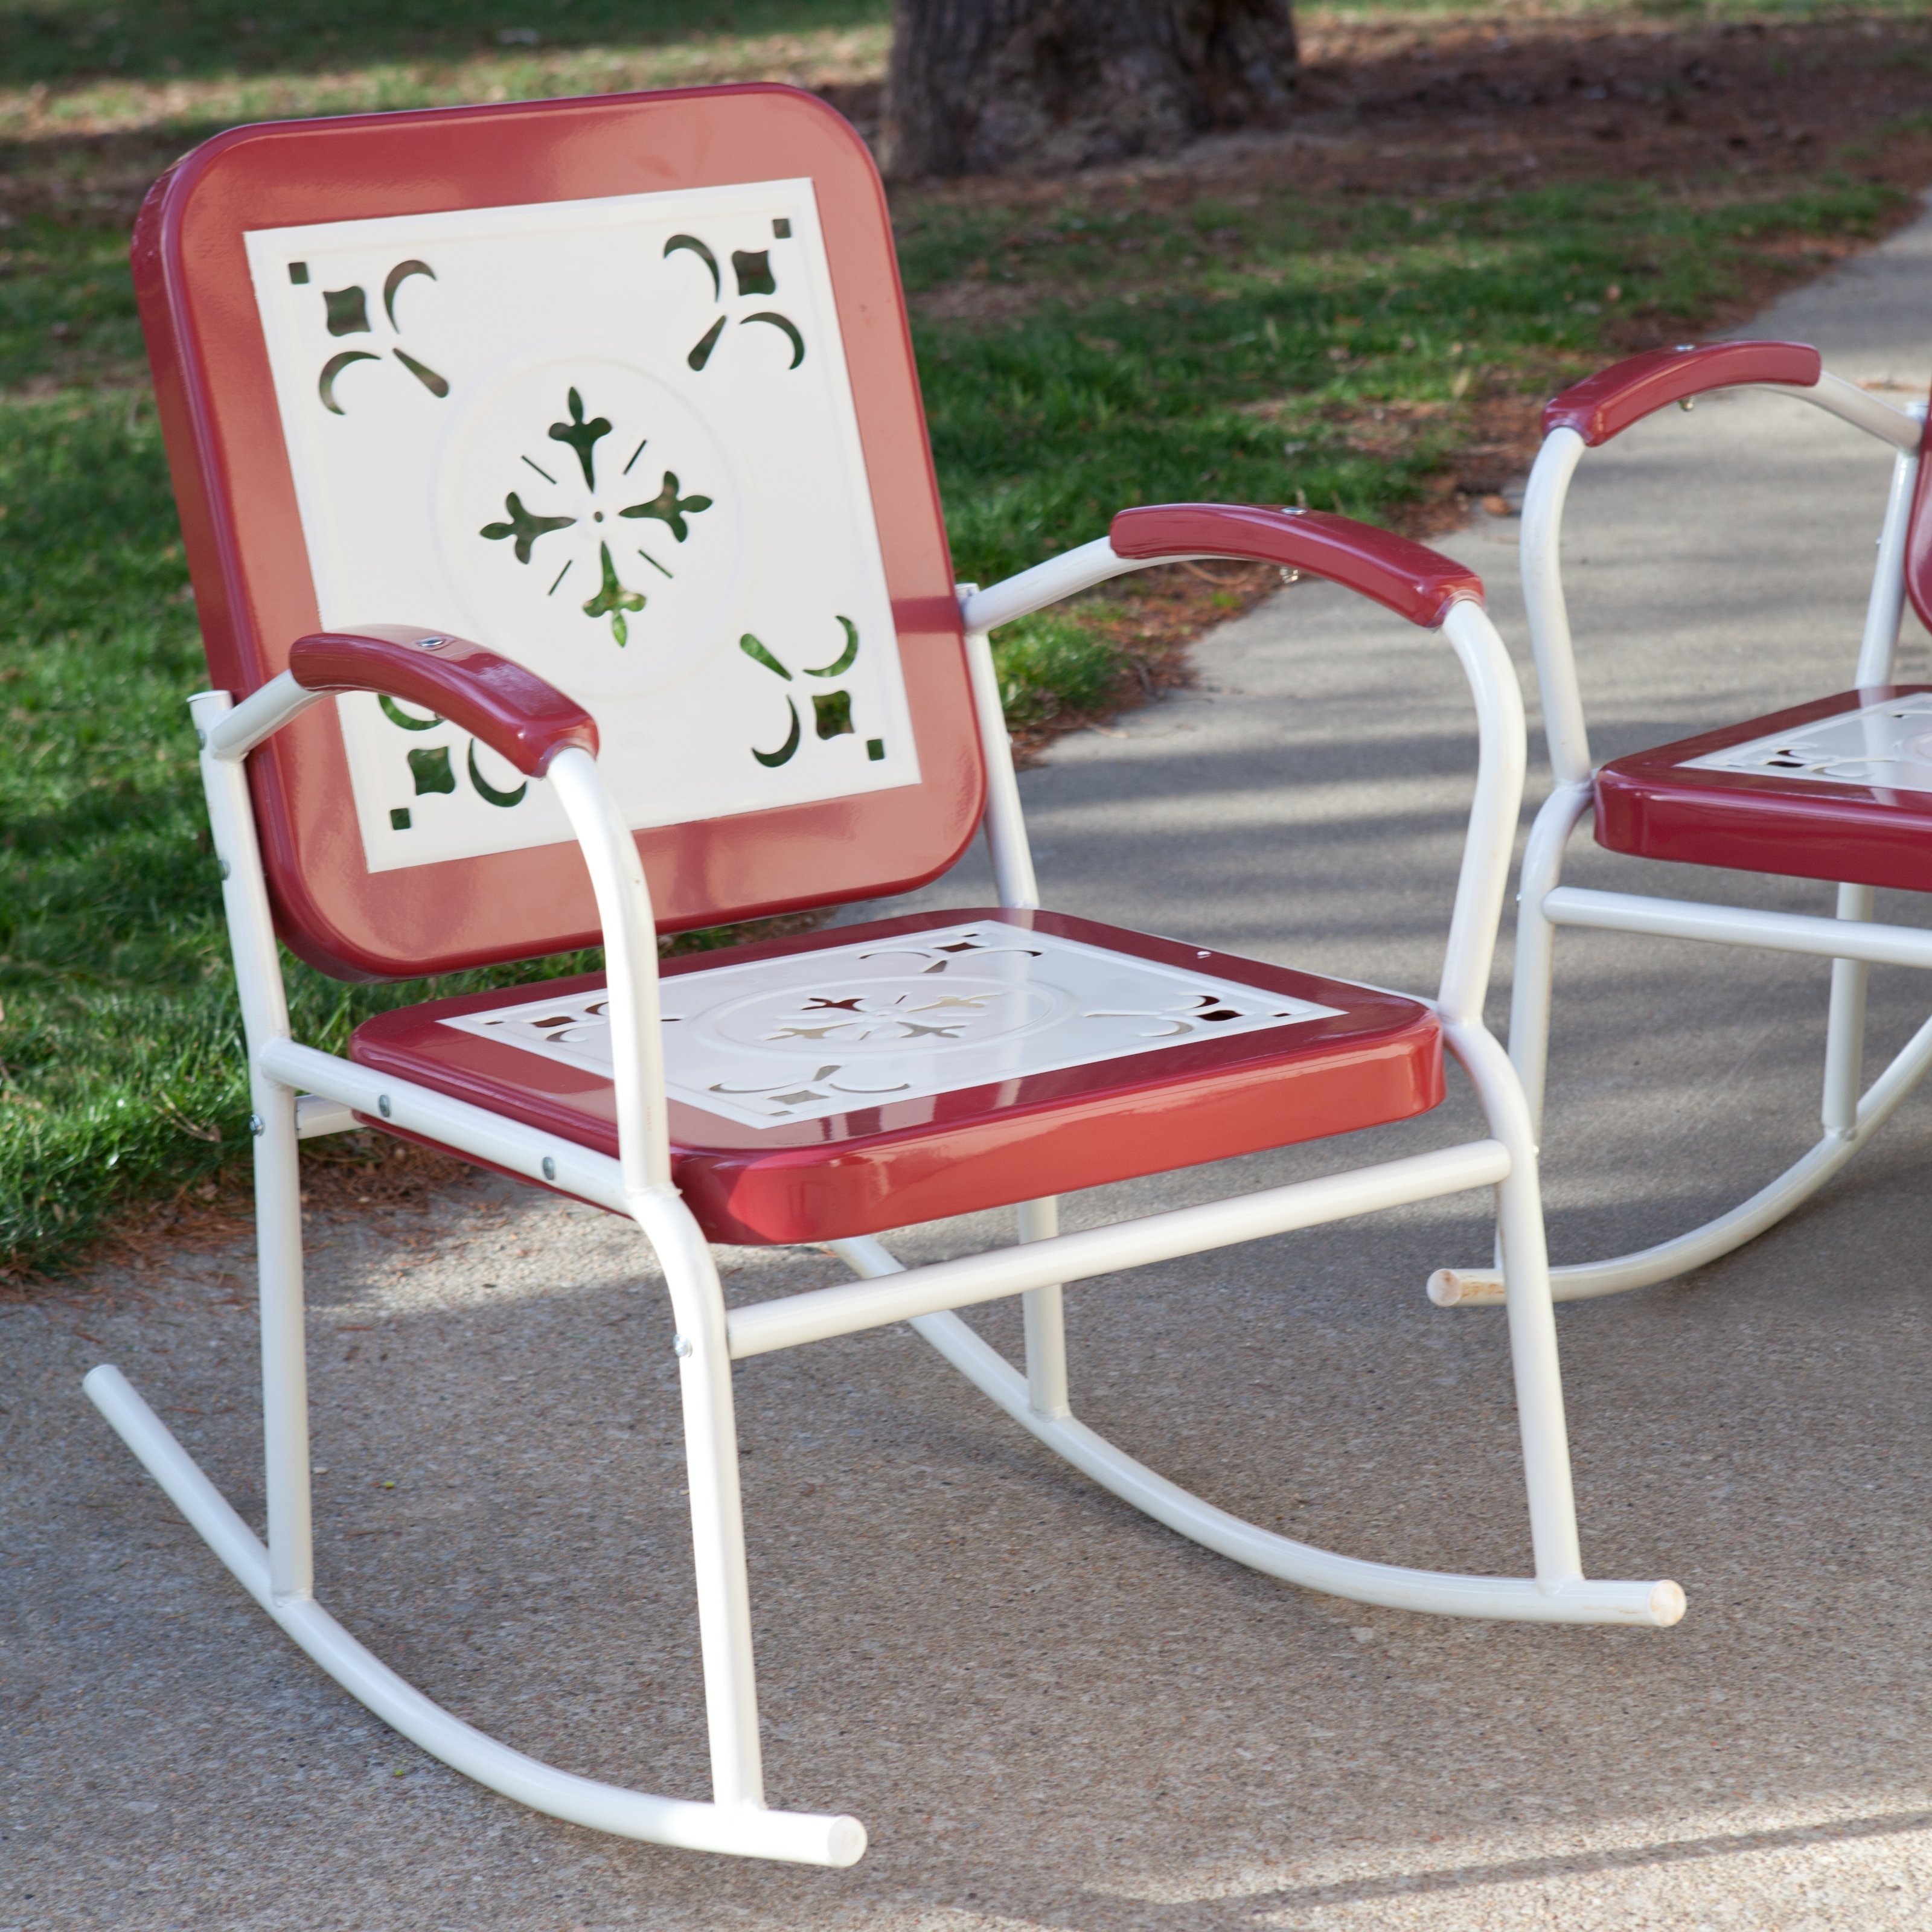 Most Recent Old Metal Outdoor Rocking Chairs – Outdoor Designs With Regard To Retro Outdoor Rocking Chairs (View 4 of 15)